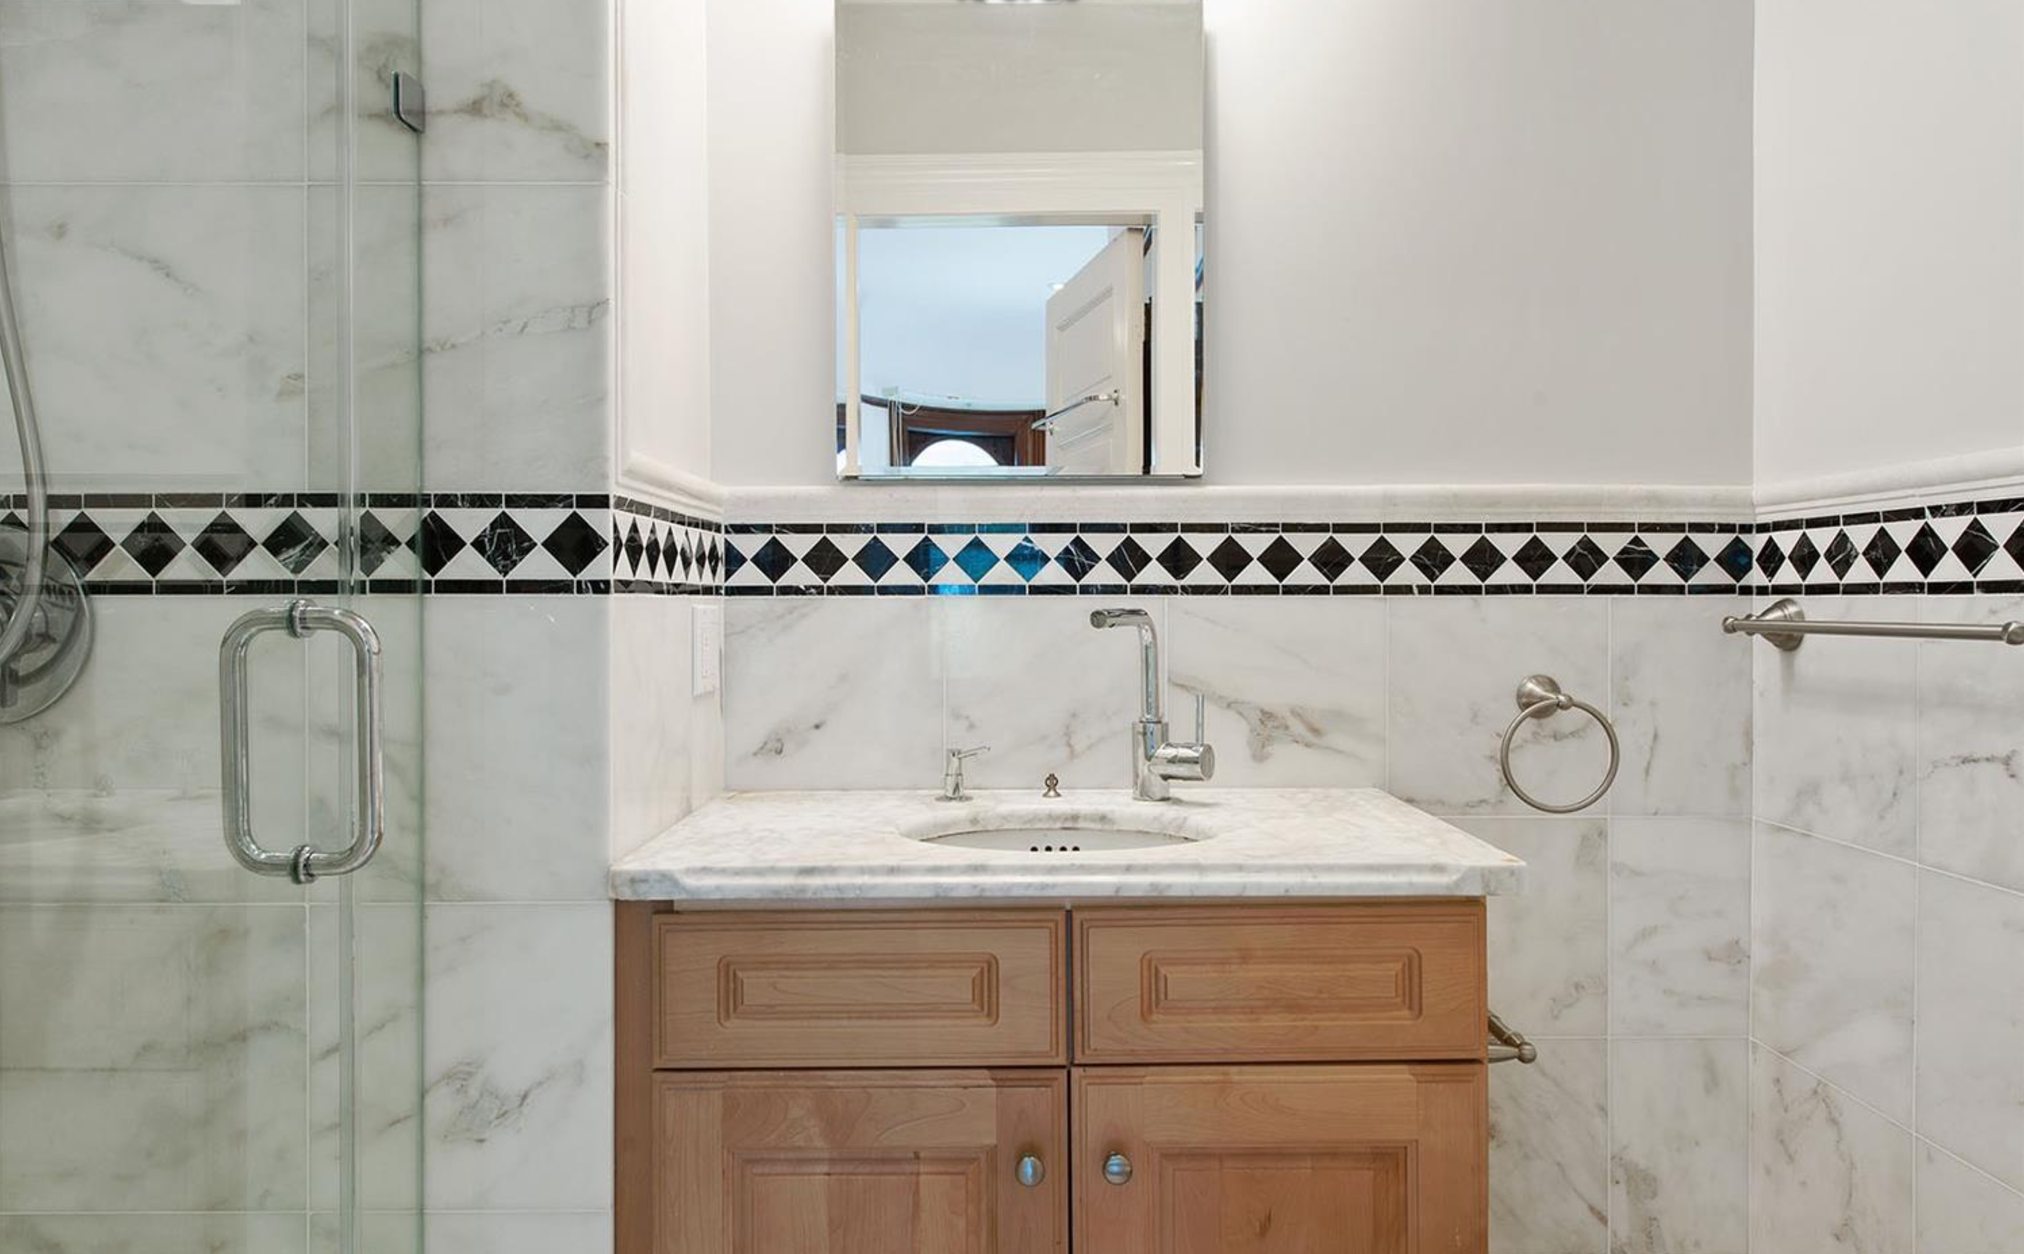 850 Steiner Street - Bathroom